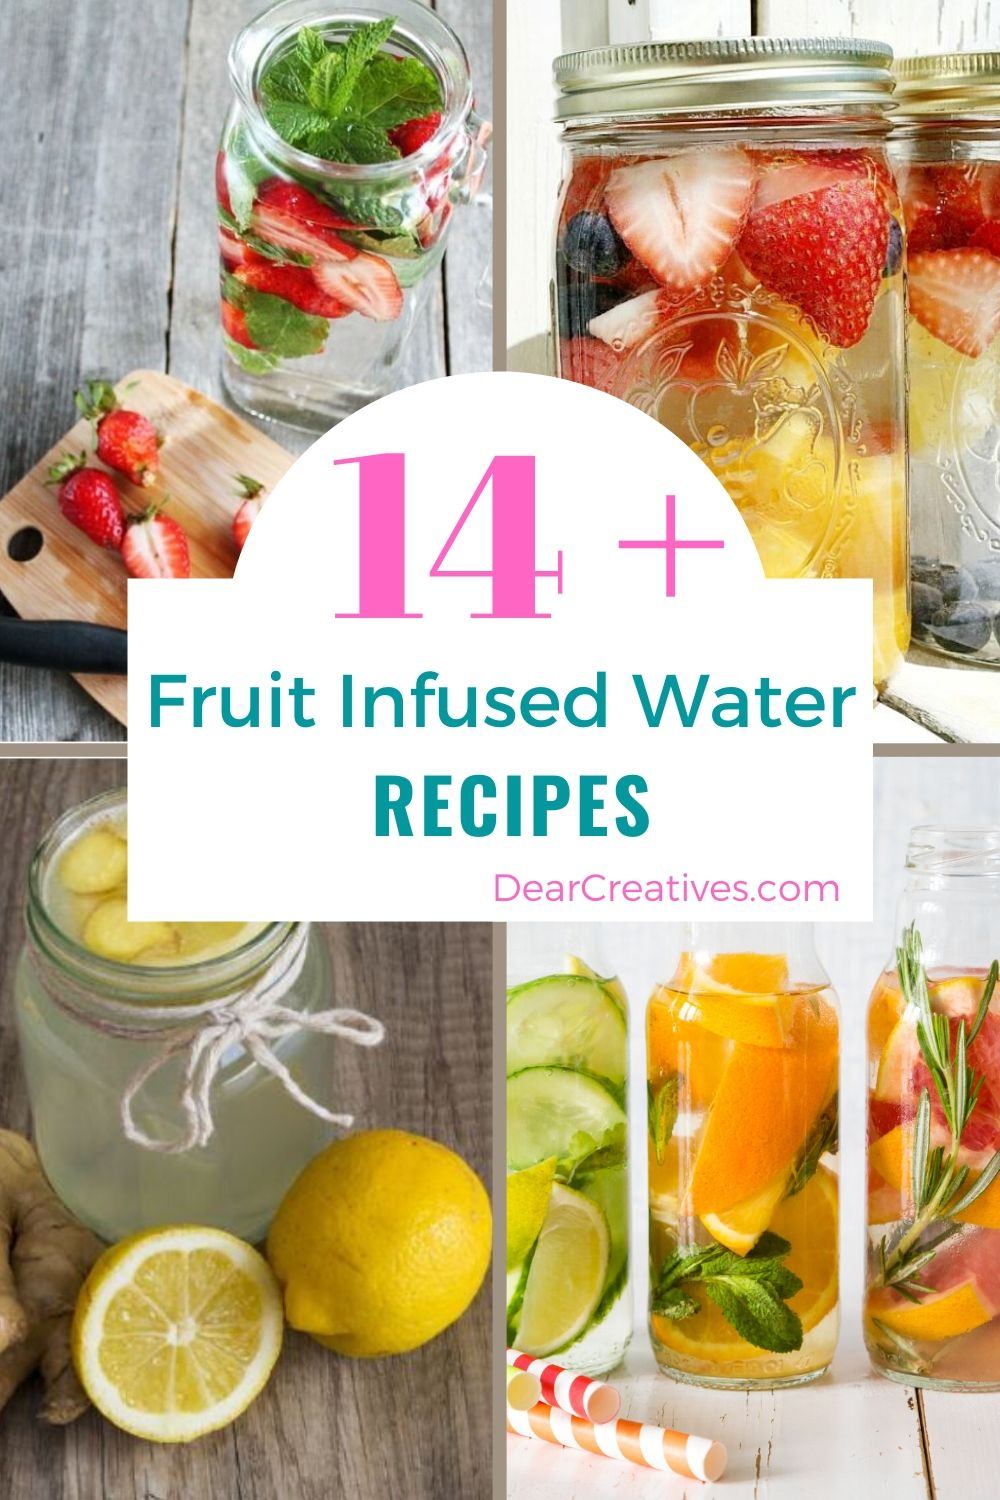 14+ Fruit Infused Water Recipes You'll Want to Drink!